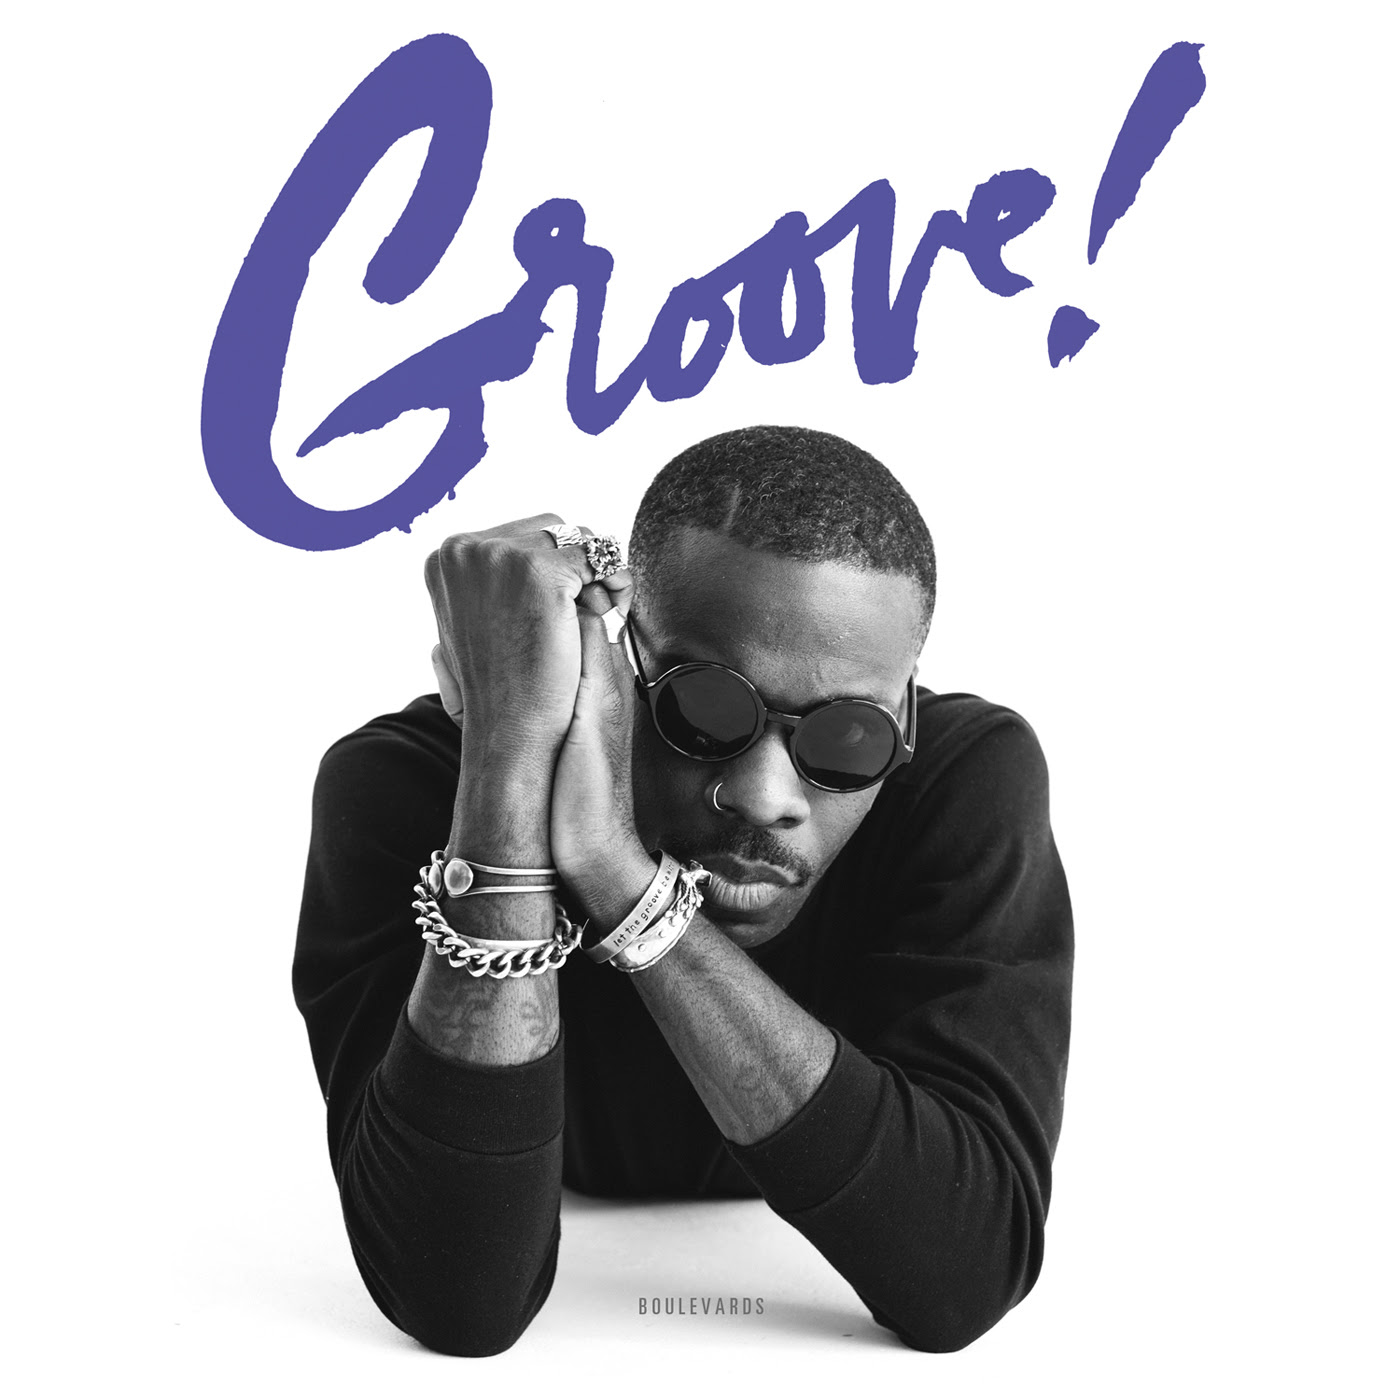 Boulevards streams his new album 'Groove!' ahead of it's April 1st release date, via Captured Tracks.